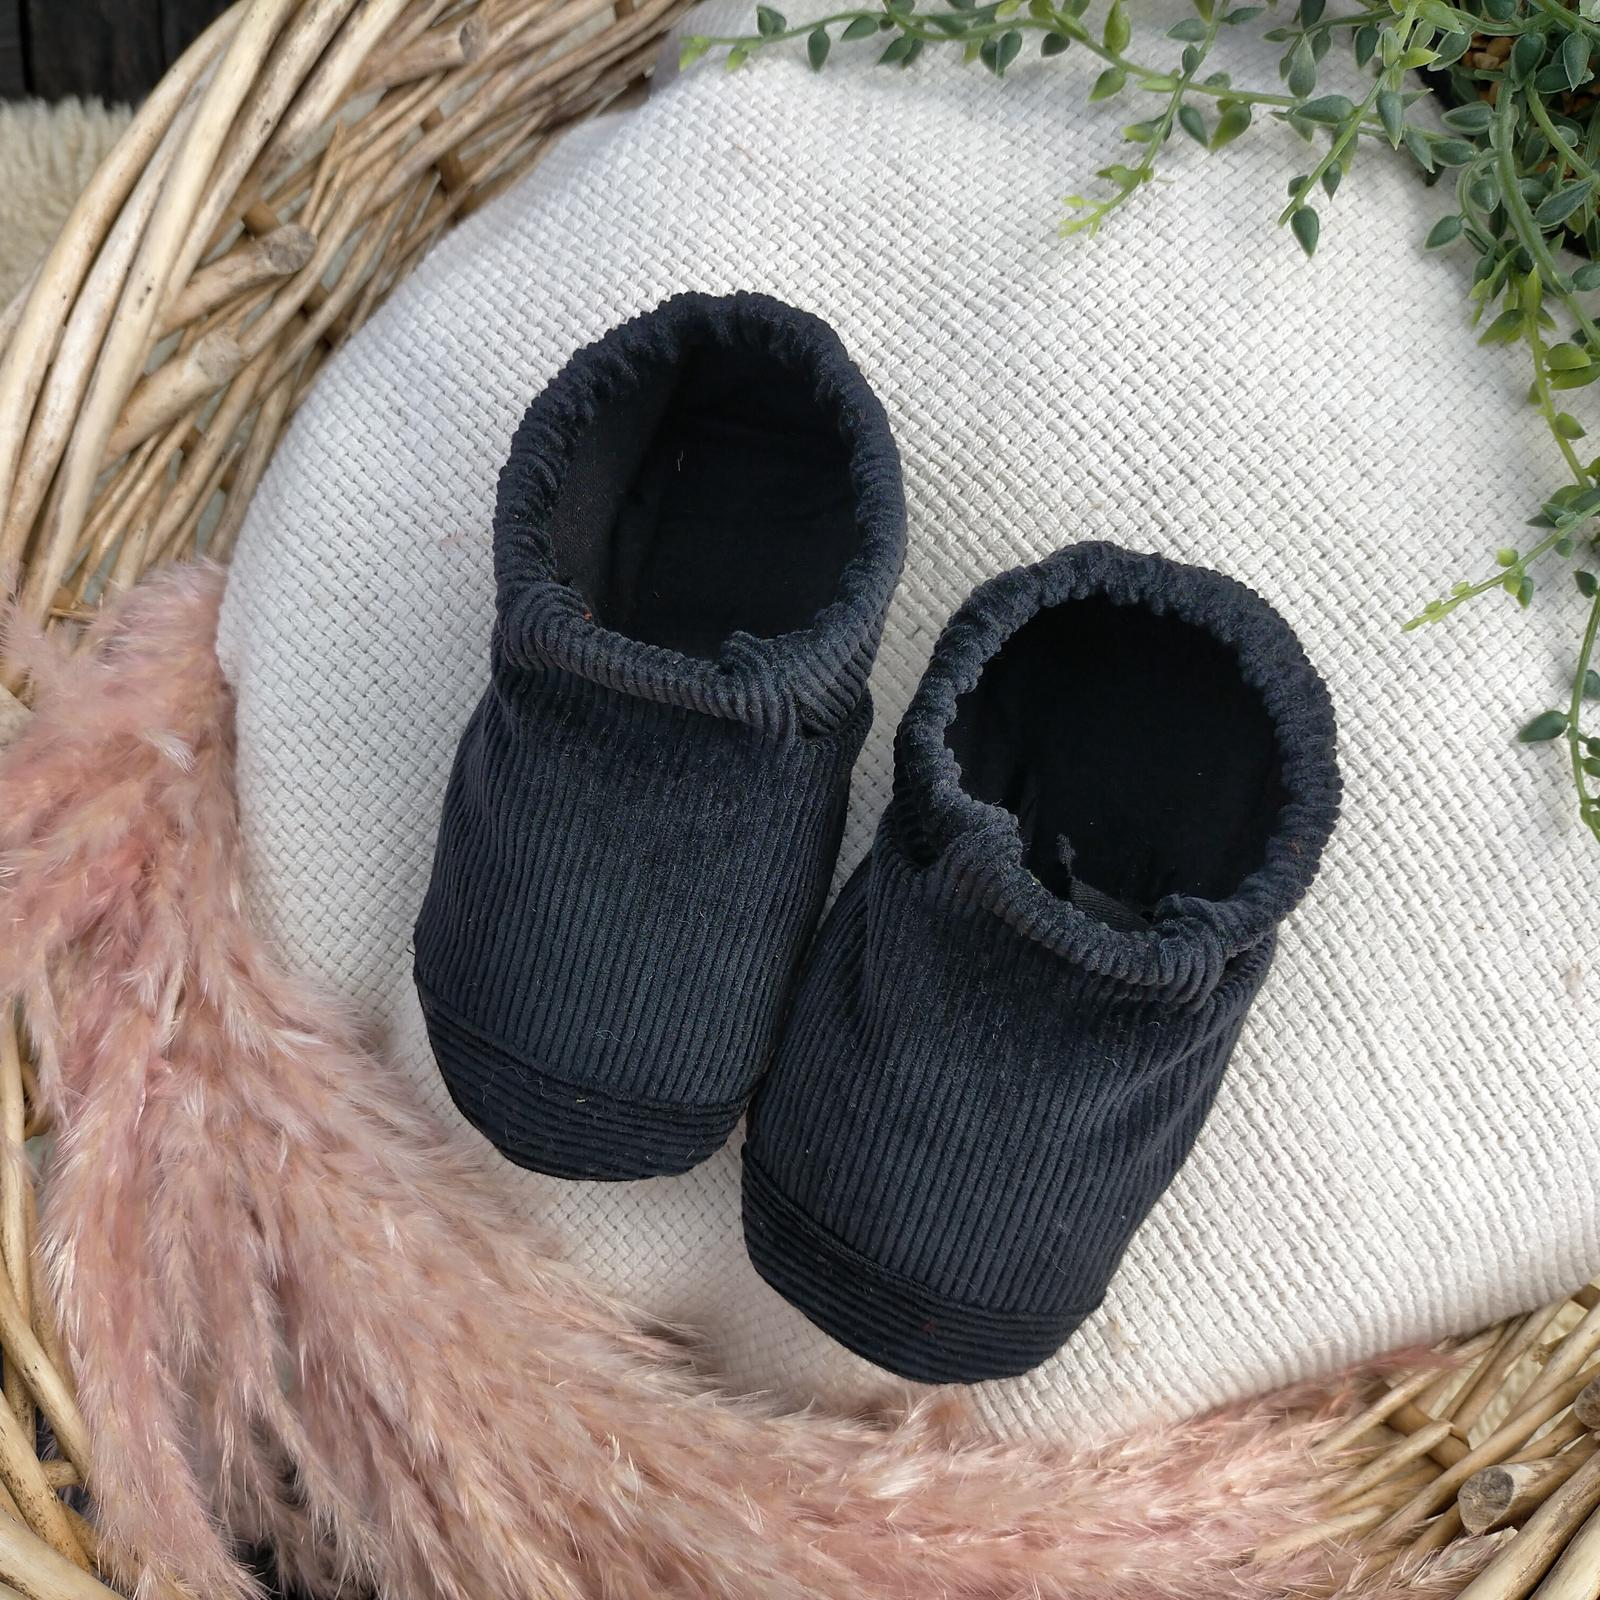 Sustainable and ethically-made footwear for kids